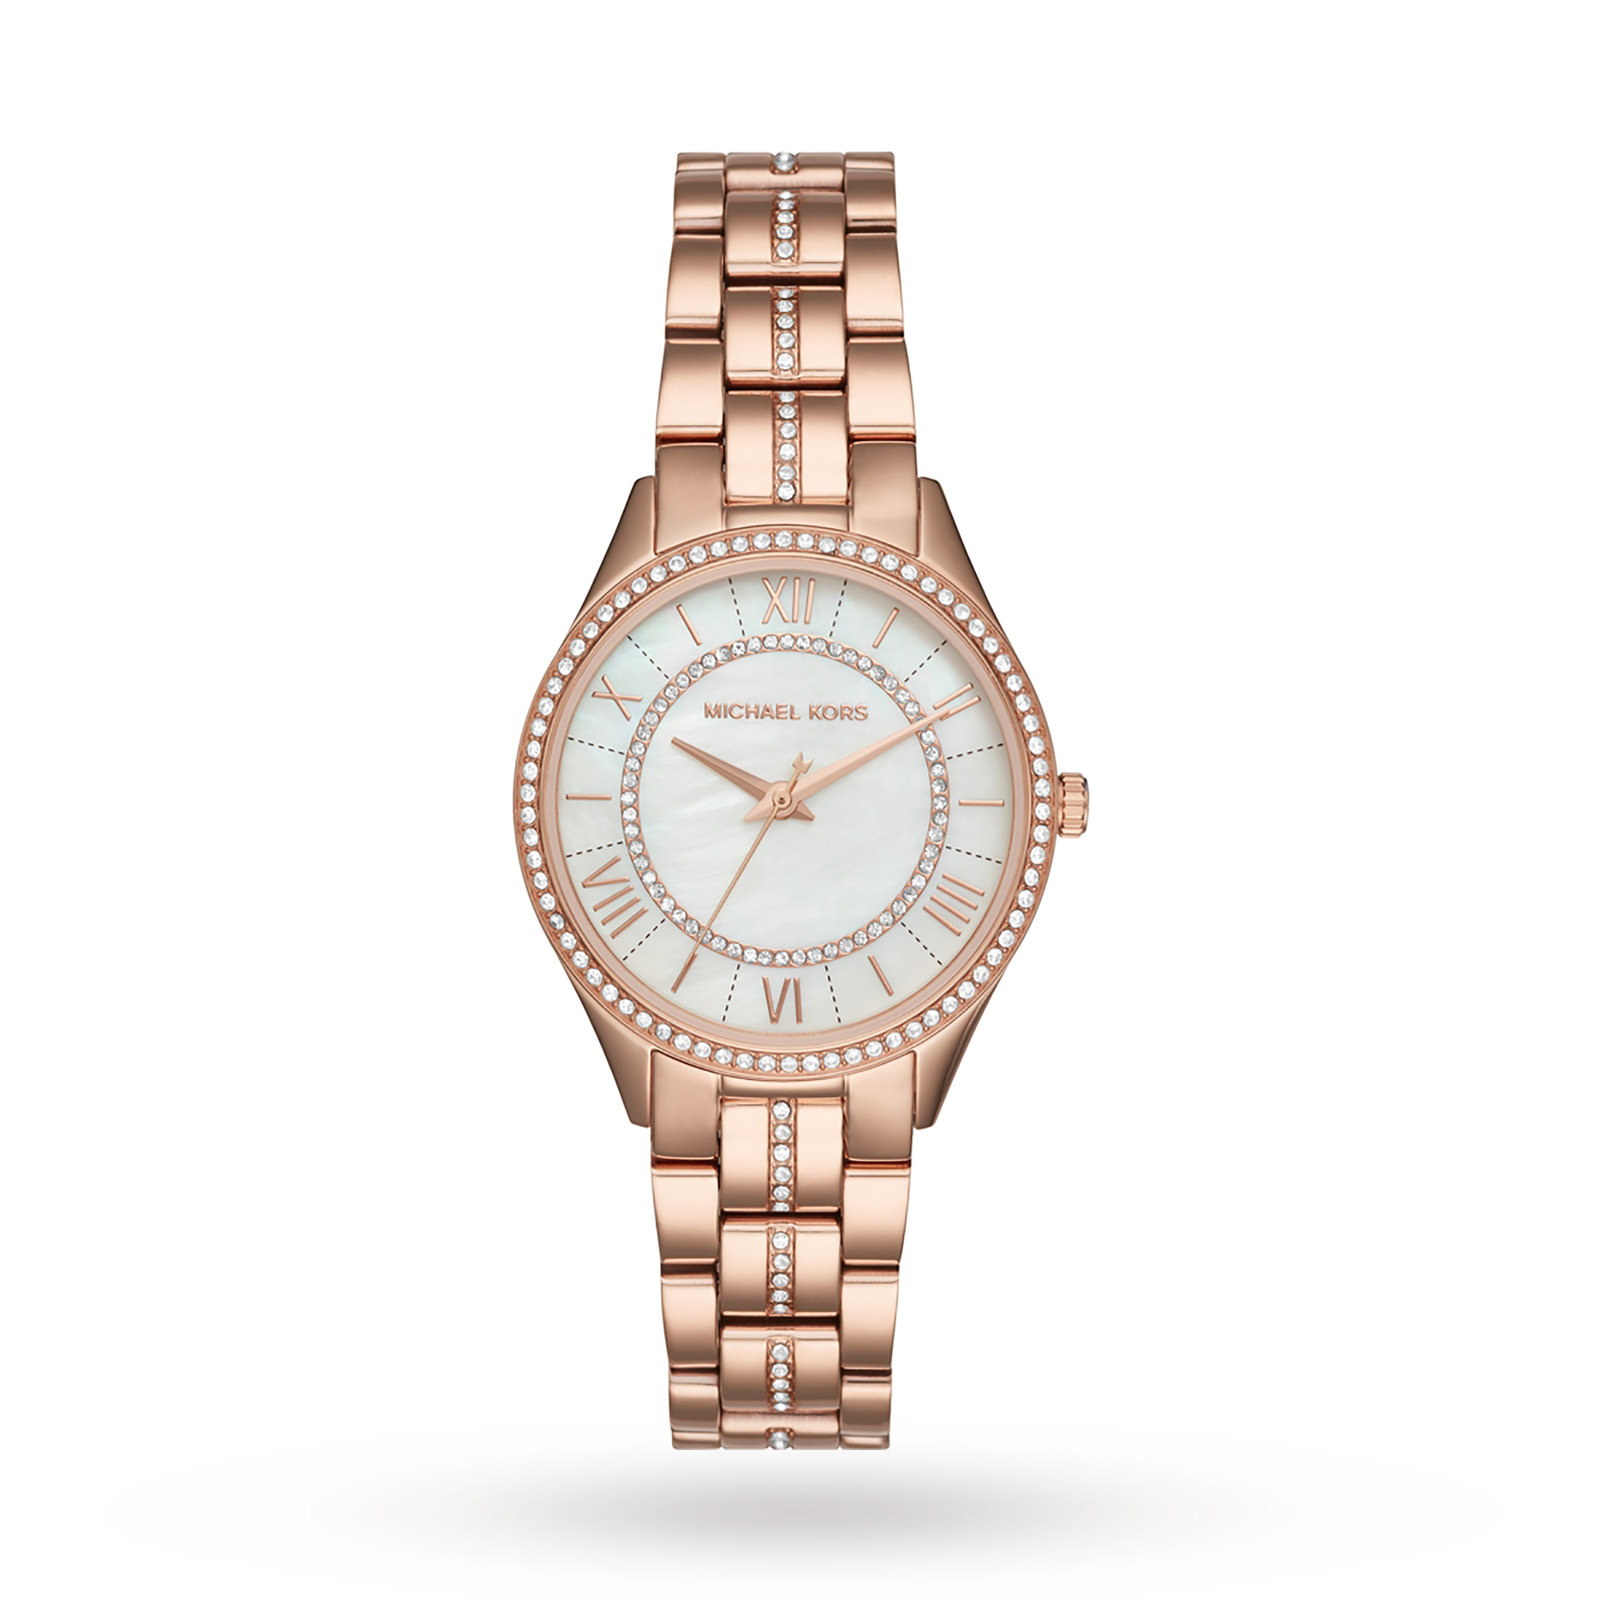 Michael Kors Gold Tone Three-Hand Watch